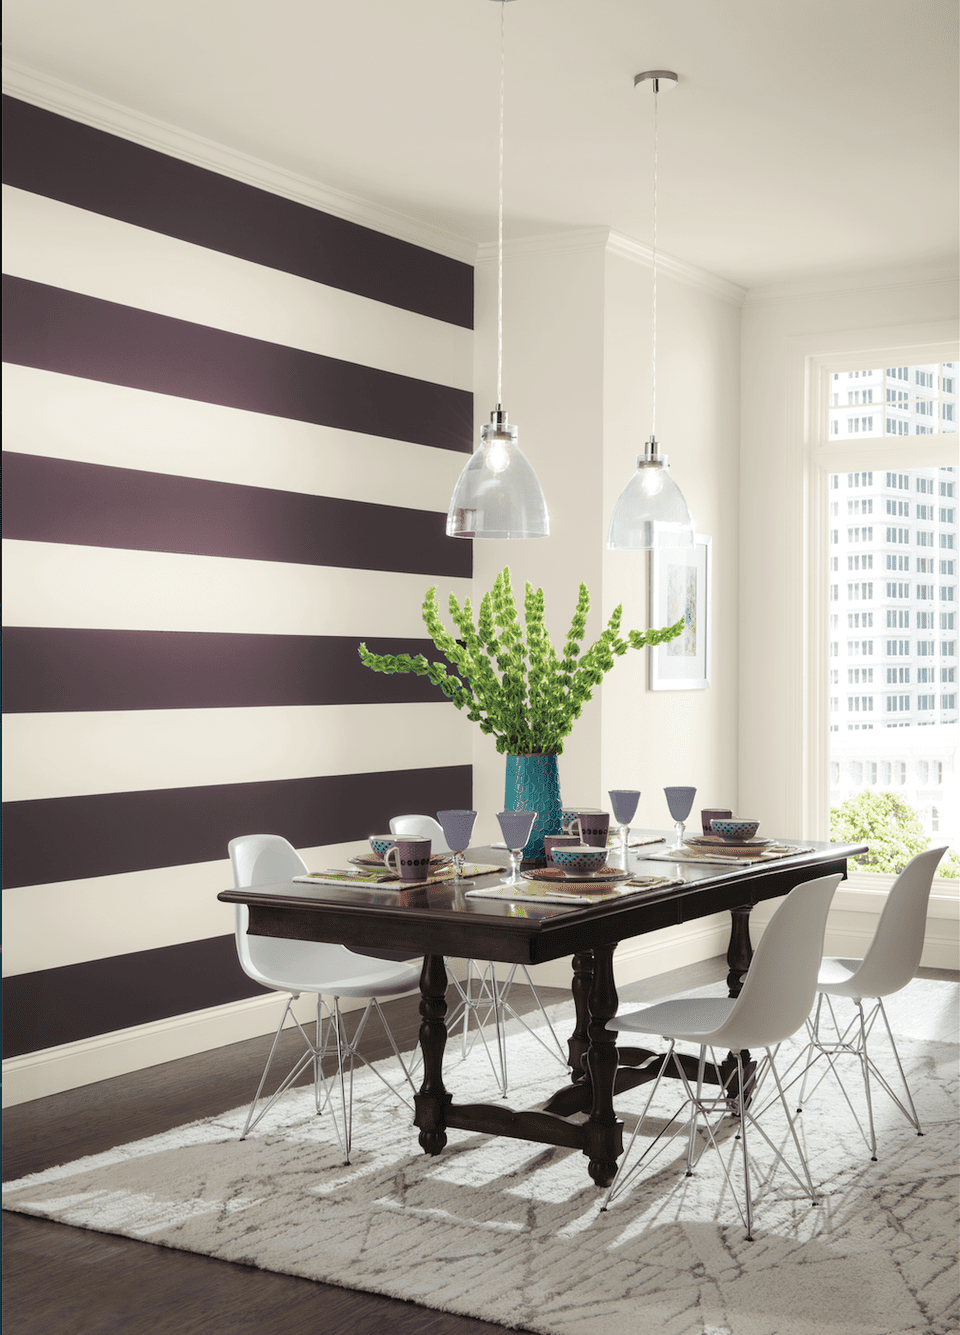 Interior house painting colors - Paint Color Stripe Ideas Sherwin Williams Color Trends